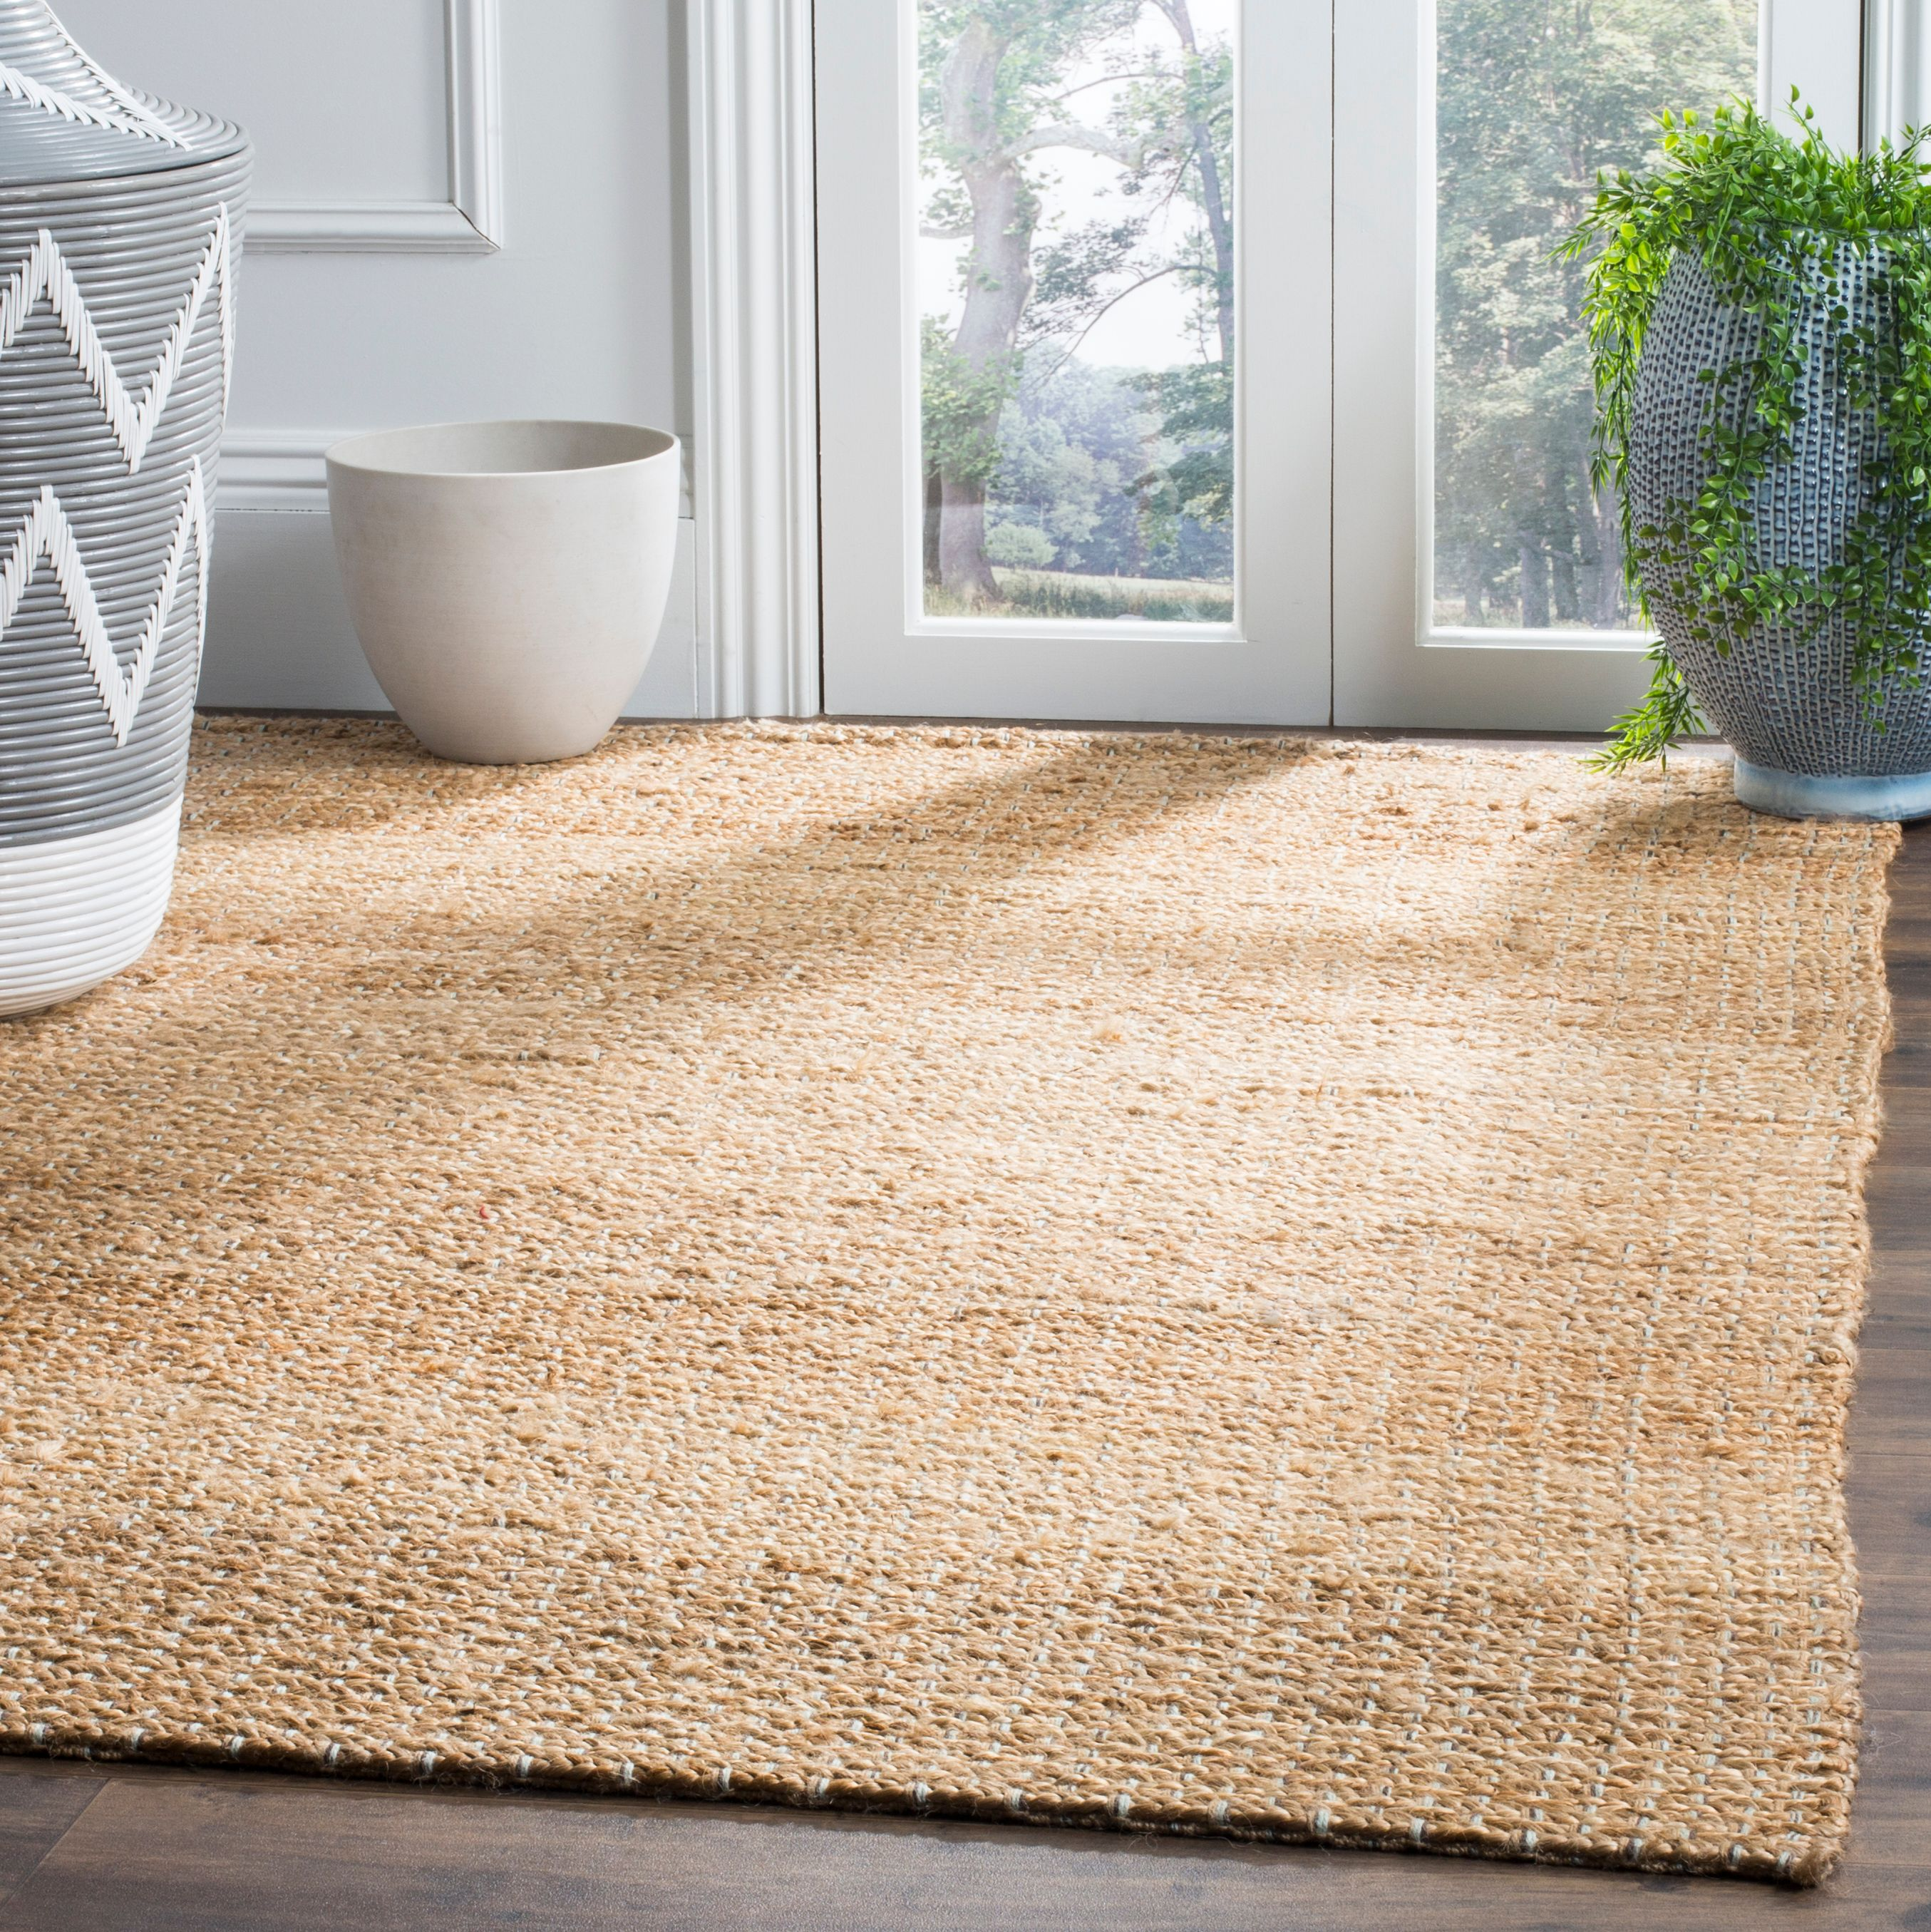 Safavieh Natural Fiber Garrett Braided Area Rug or Runner